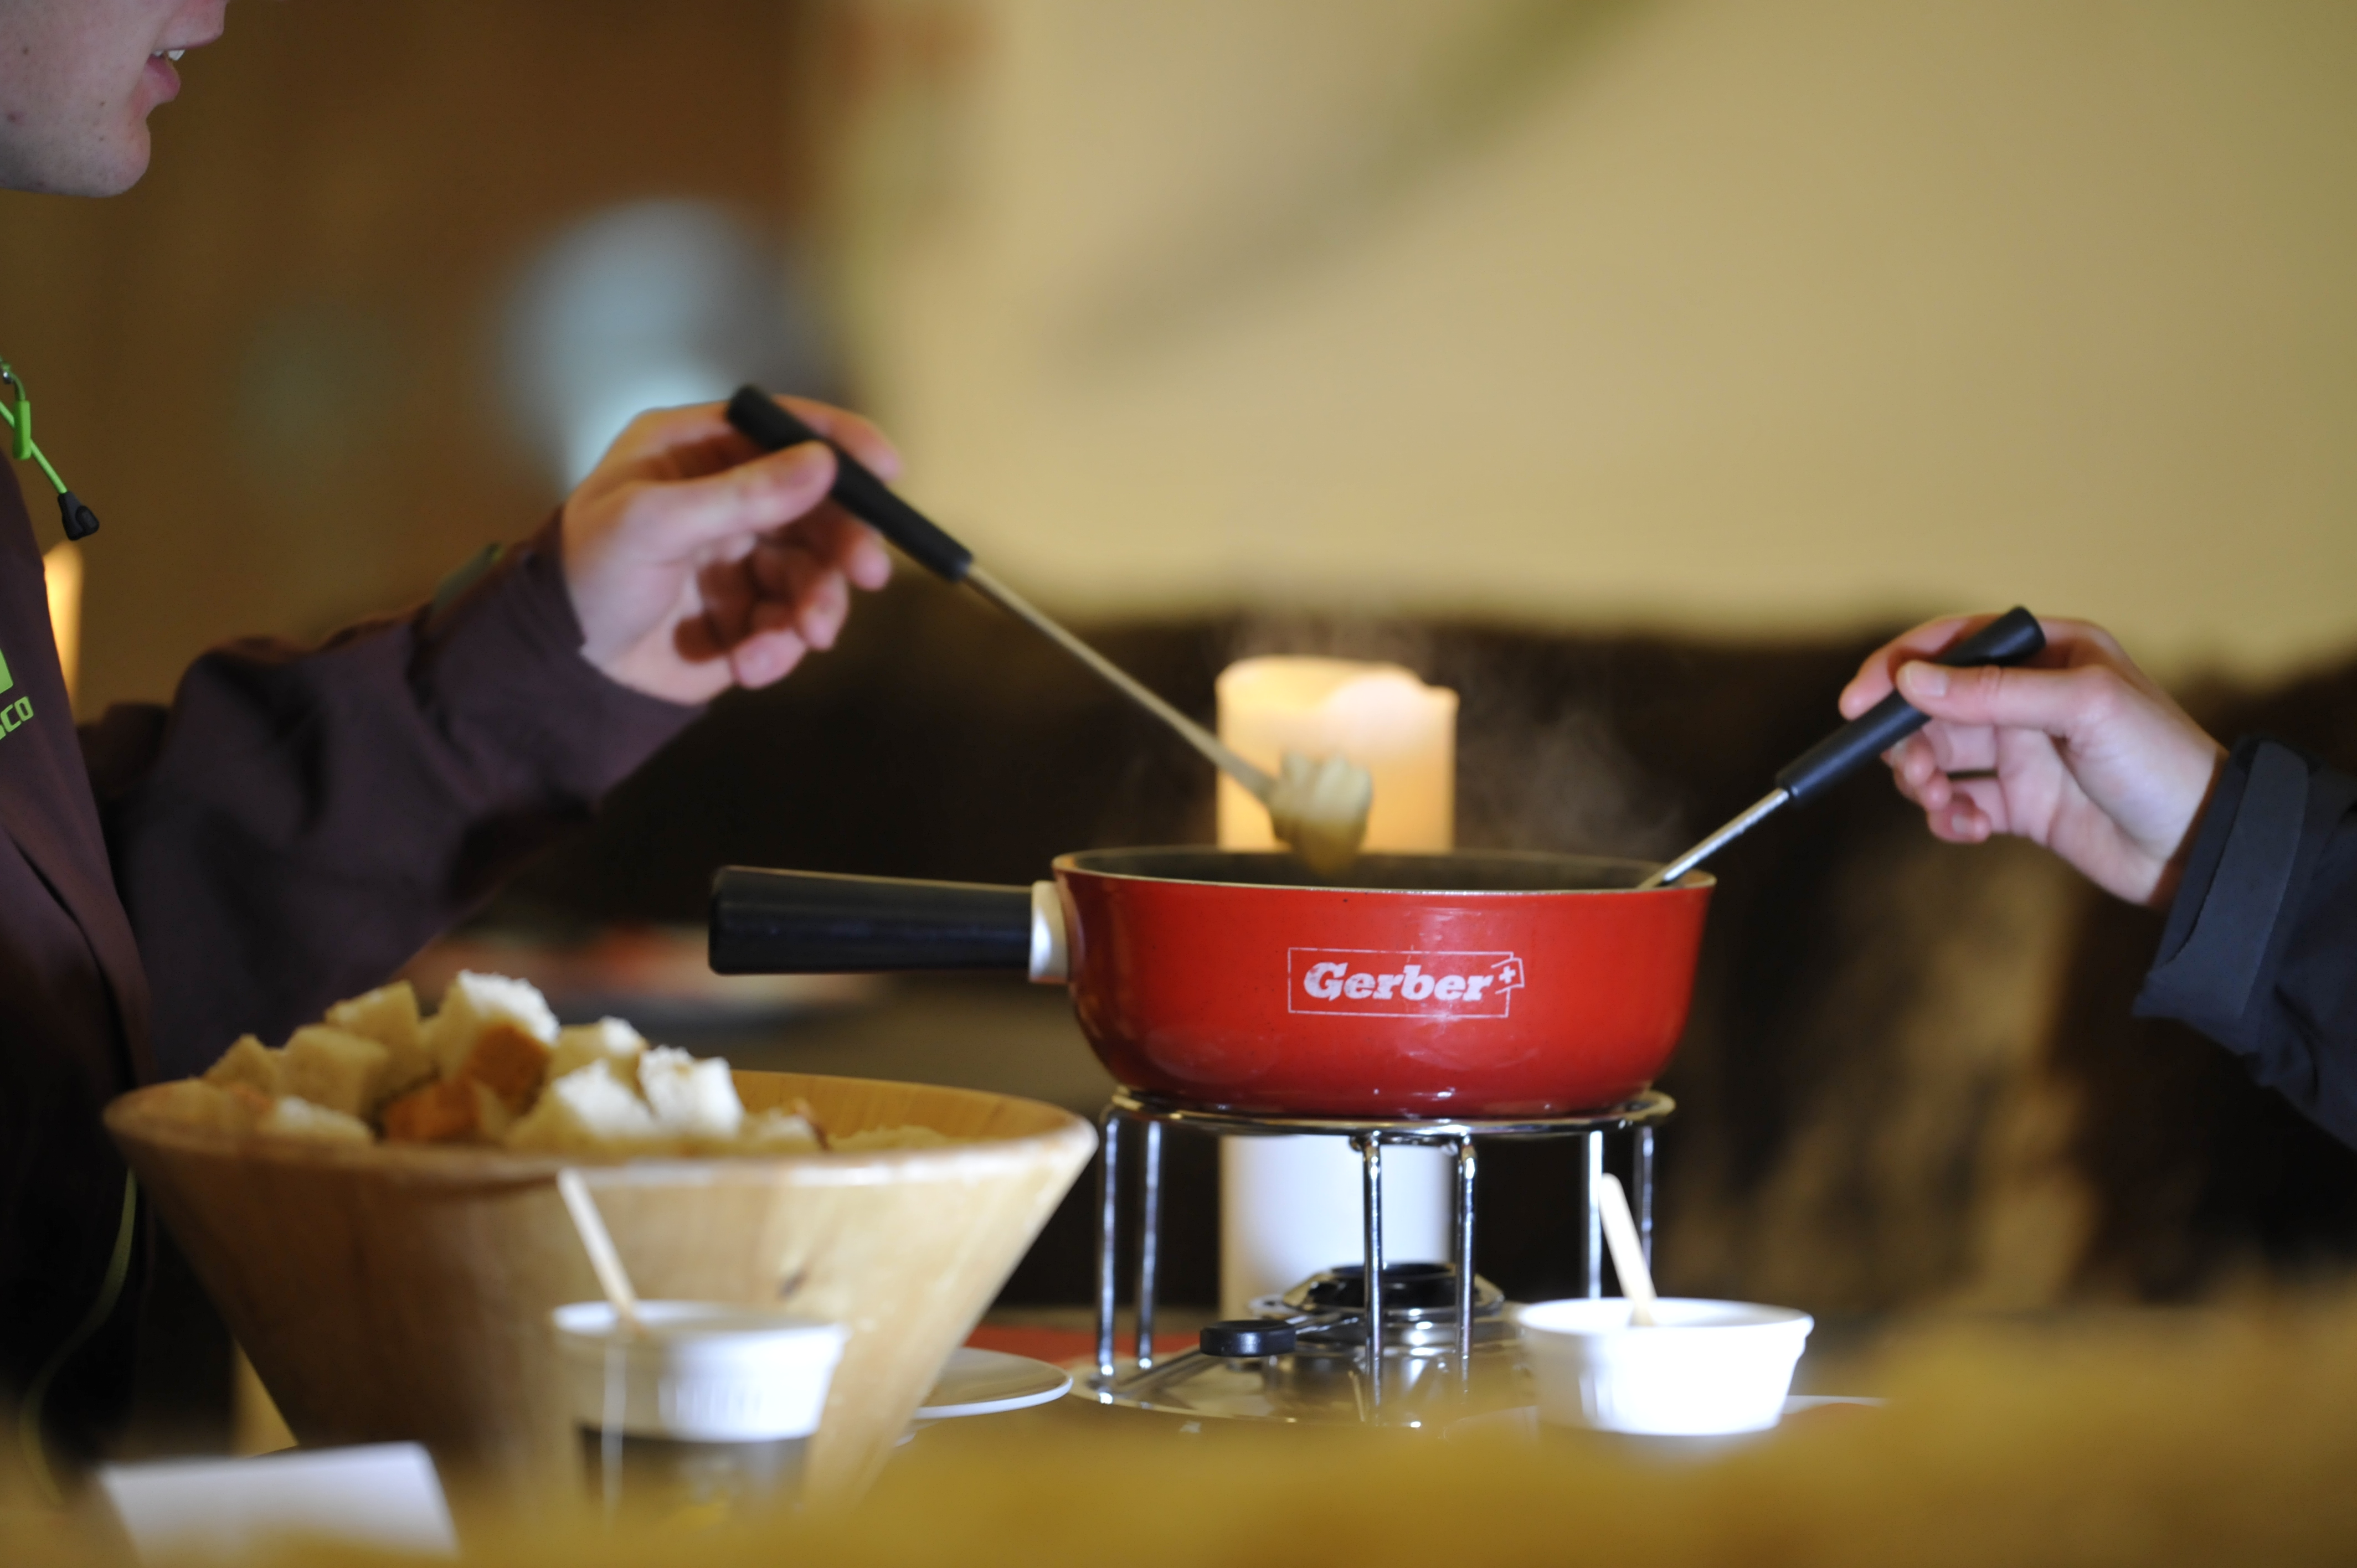 Five tons of cheese fondue